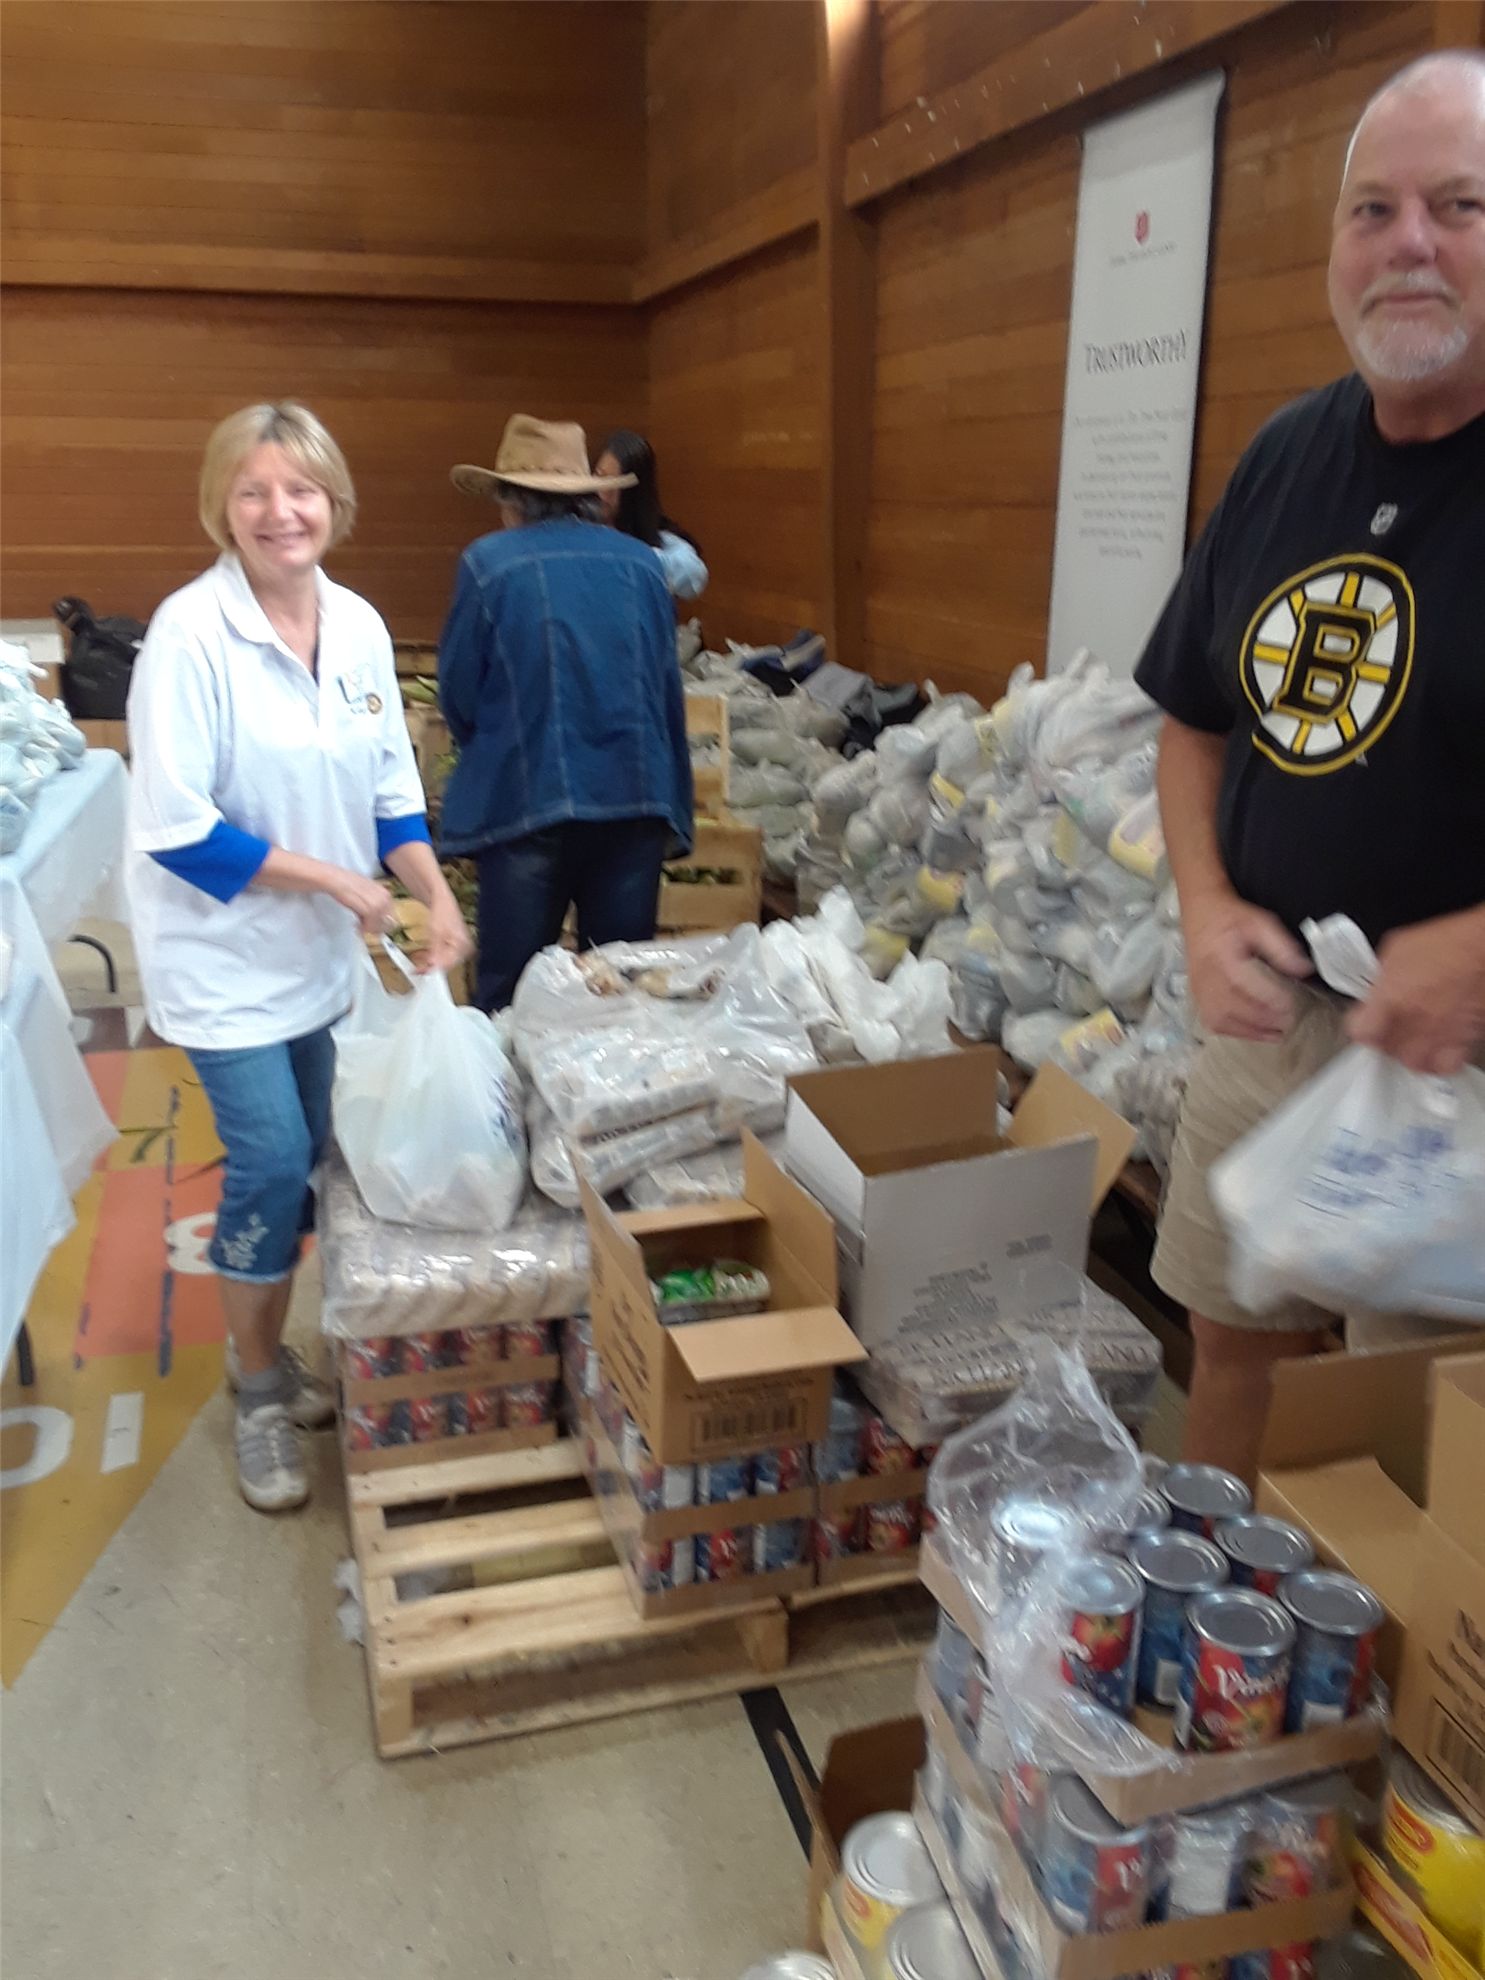 Kathy Gupta and Paul Price bagging items for distribution